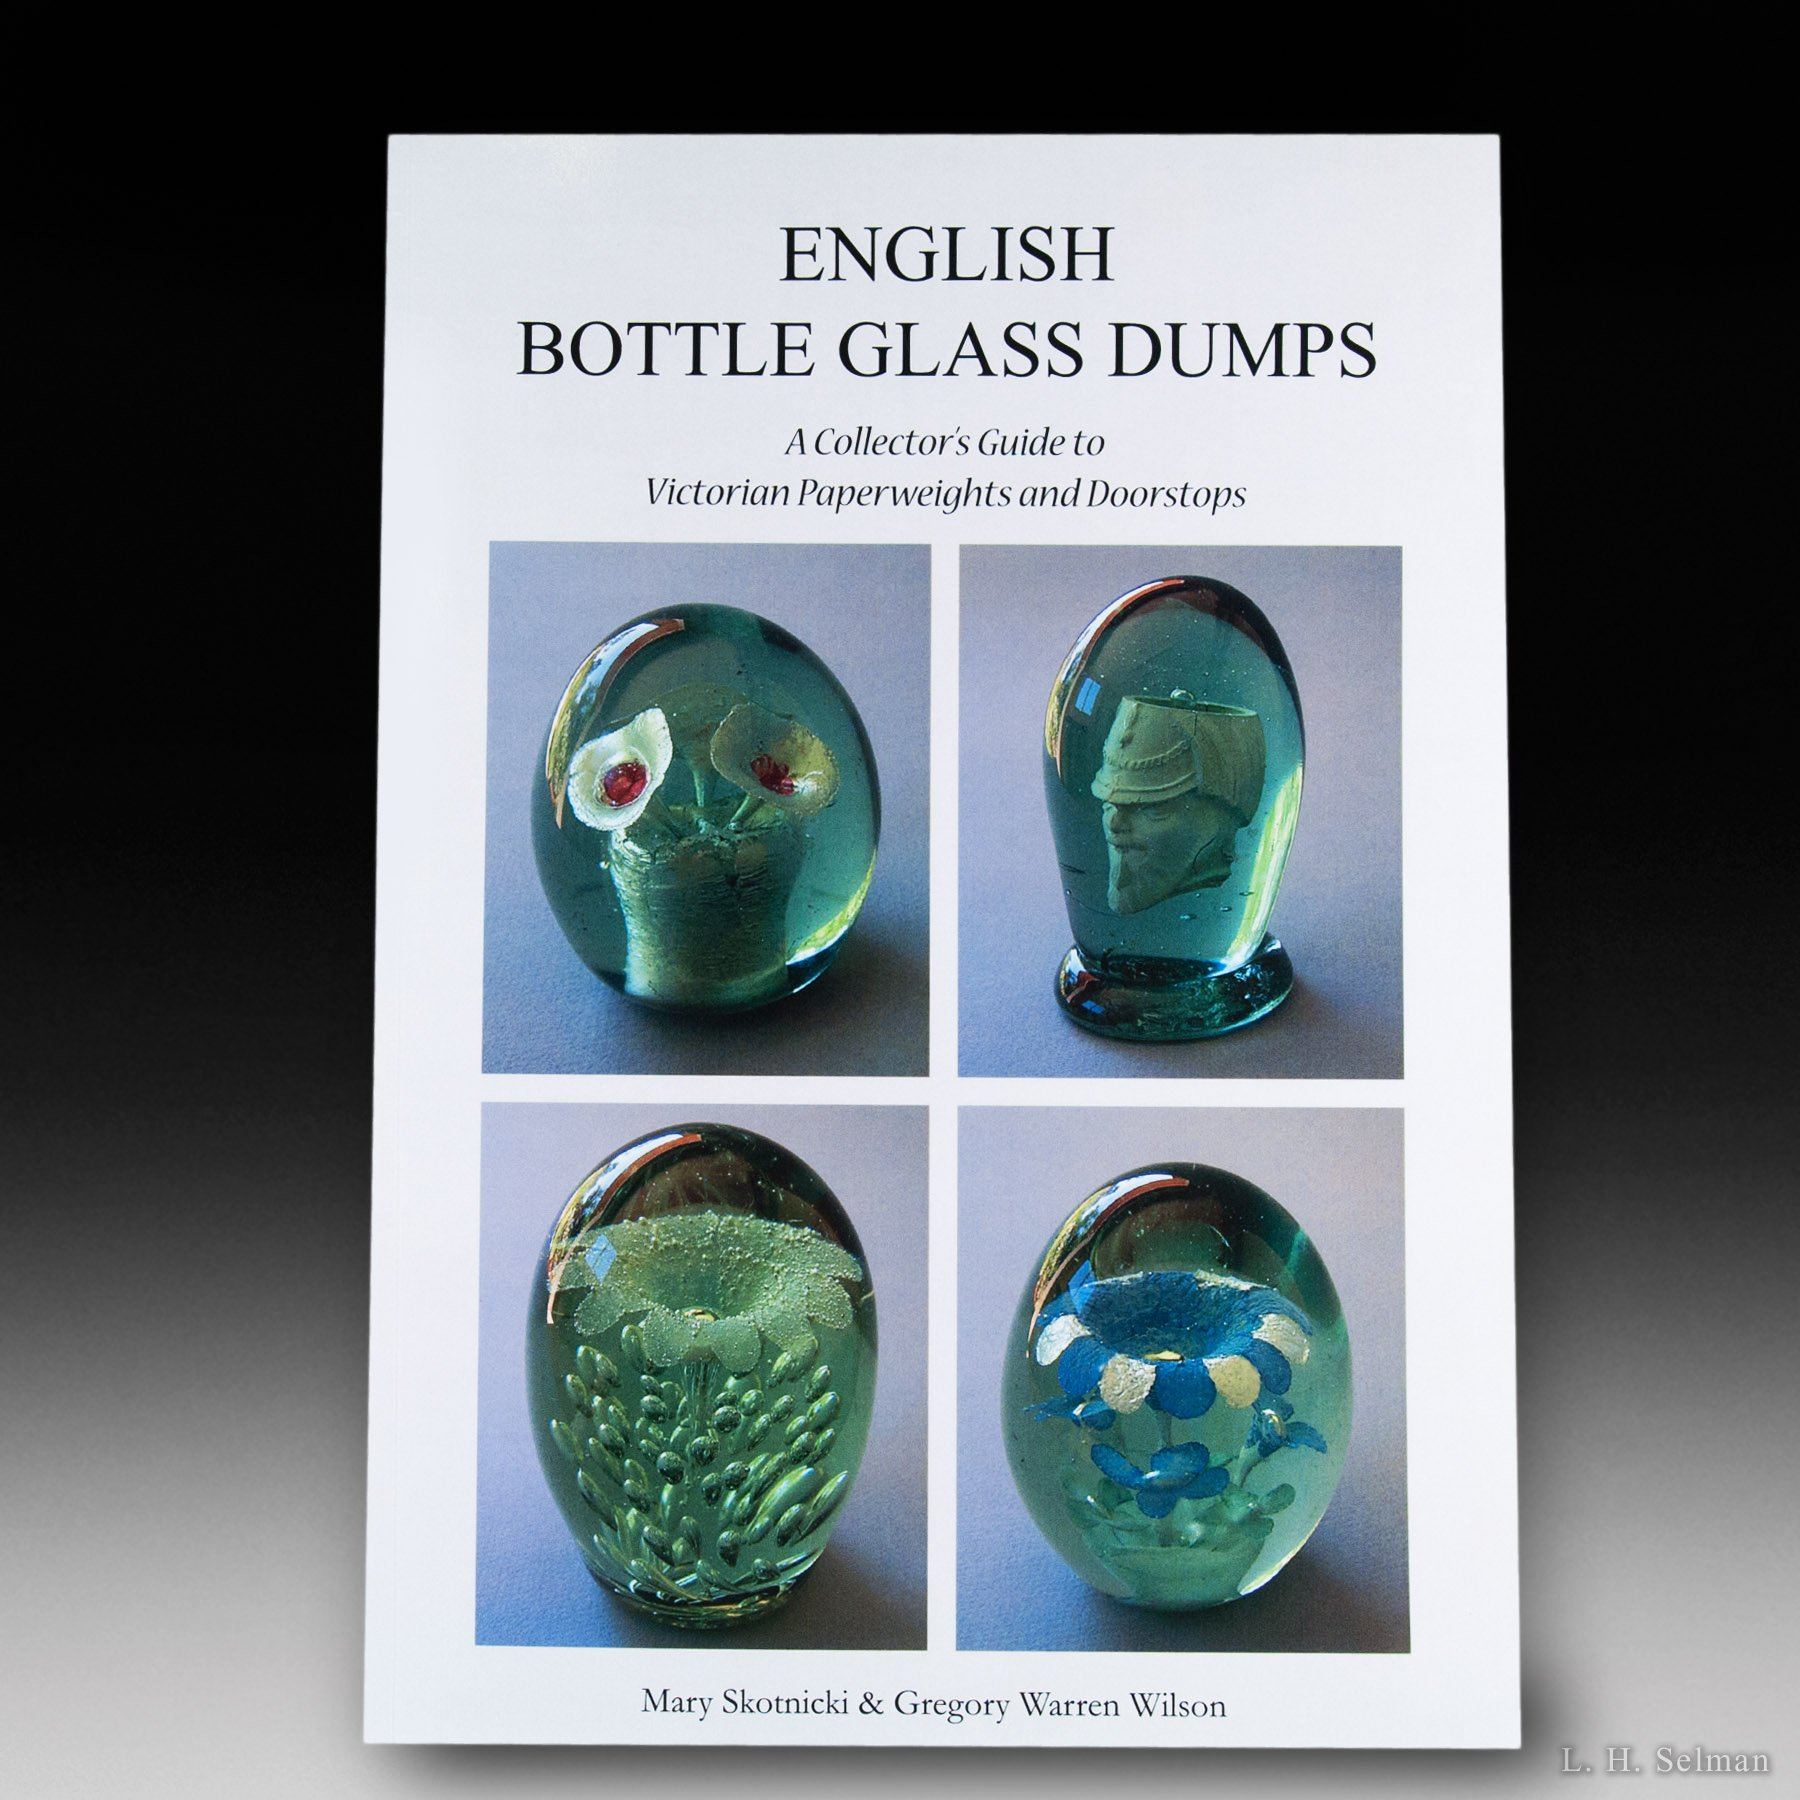 English Bottle Glass Dumps - A Collector's Guide to Victorian Paperweights and Doorstops, by Mary Skotnicki & Gregory Warren Wilson. by all Books